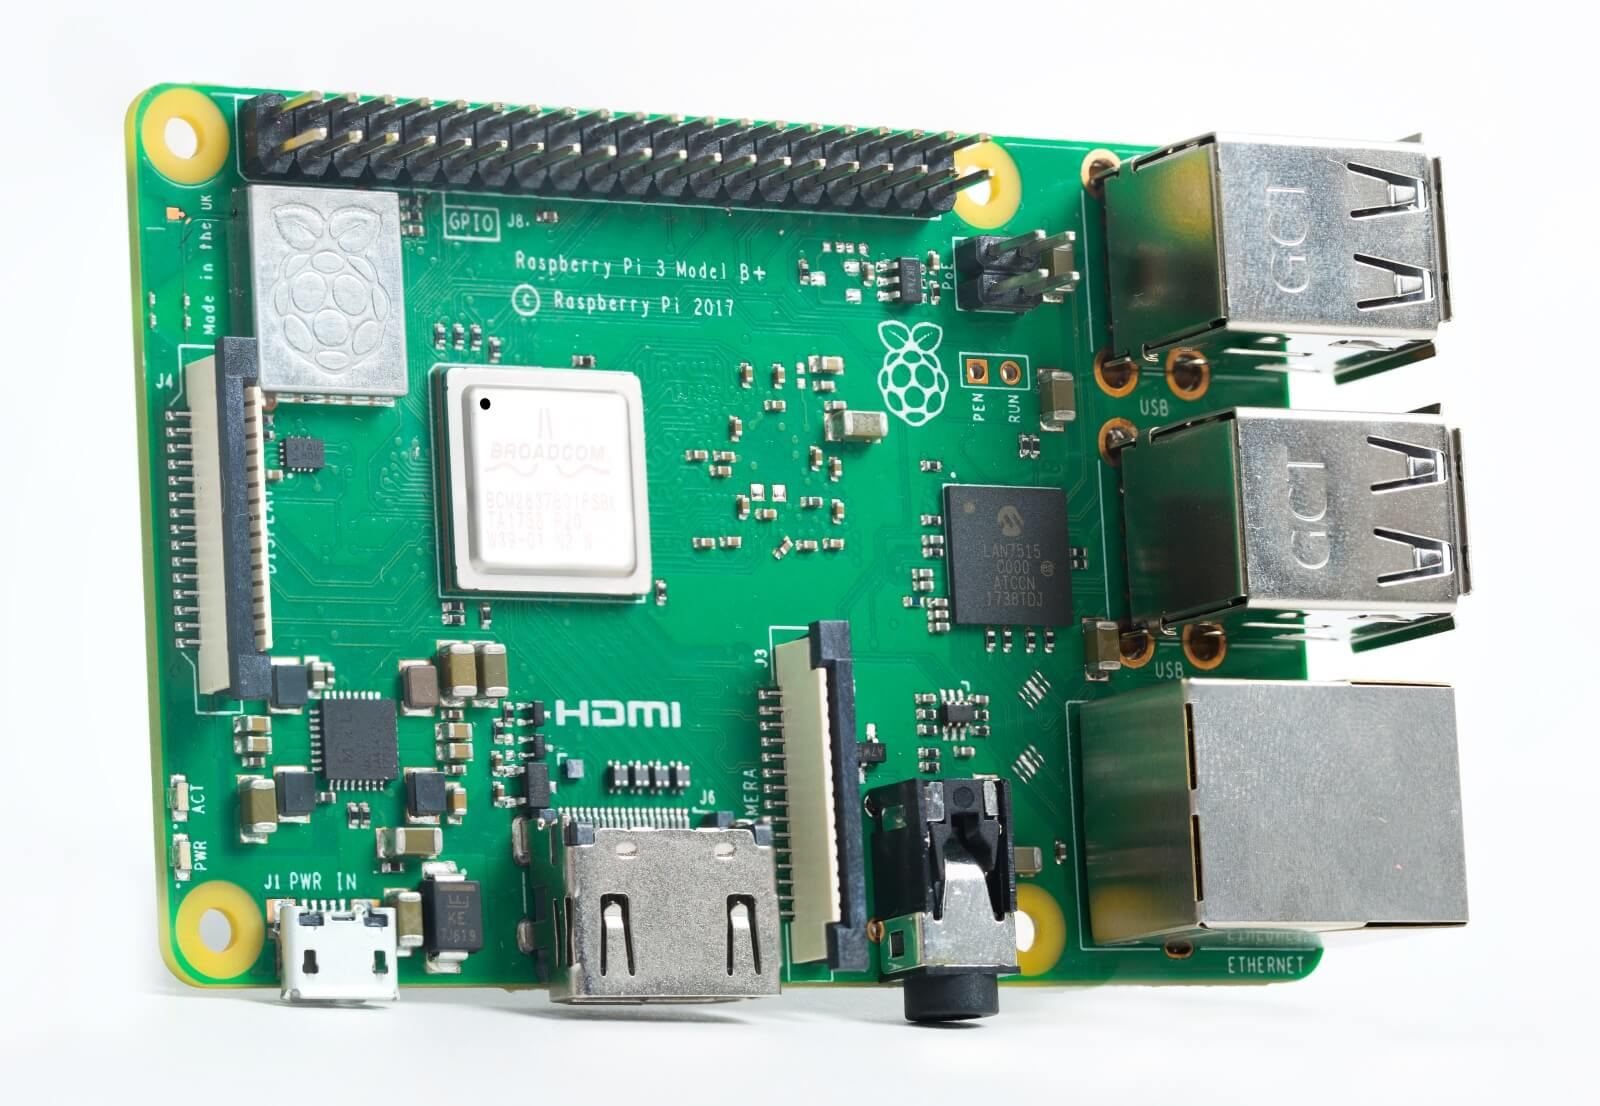 Raspberry Pi 3B+ (Bild: Raspberry Pi Foundation)